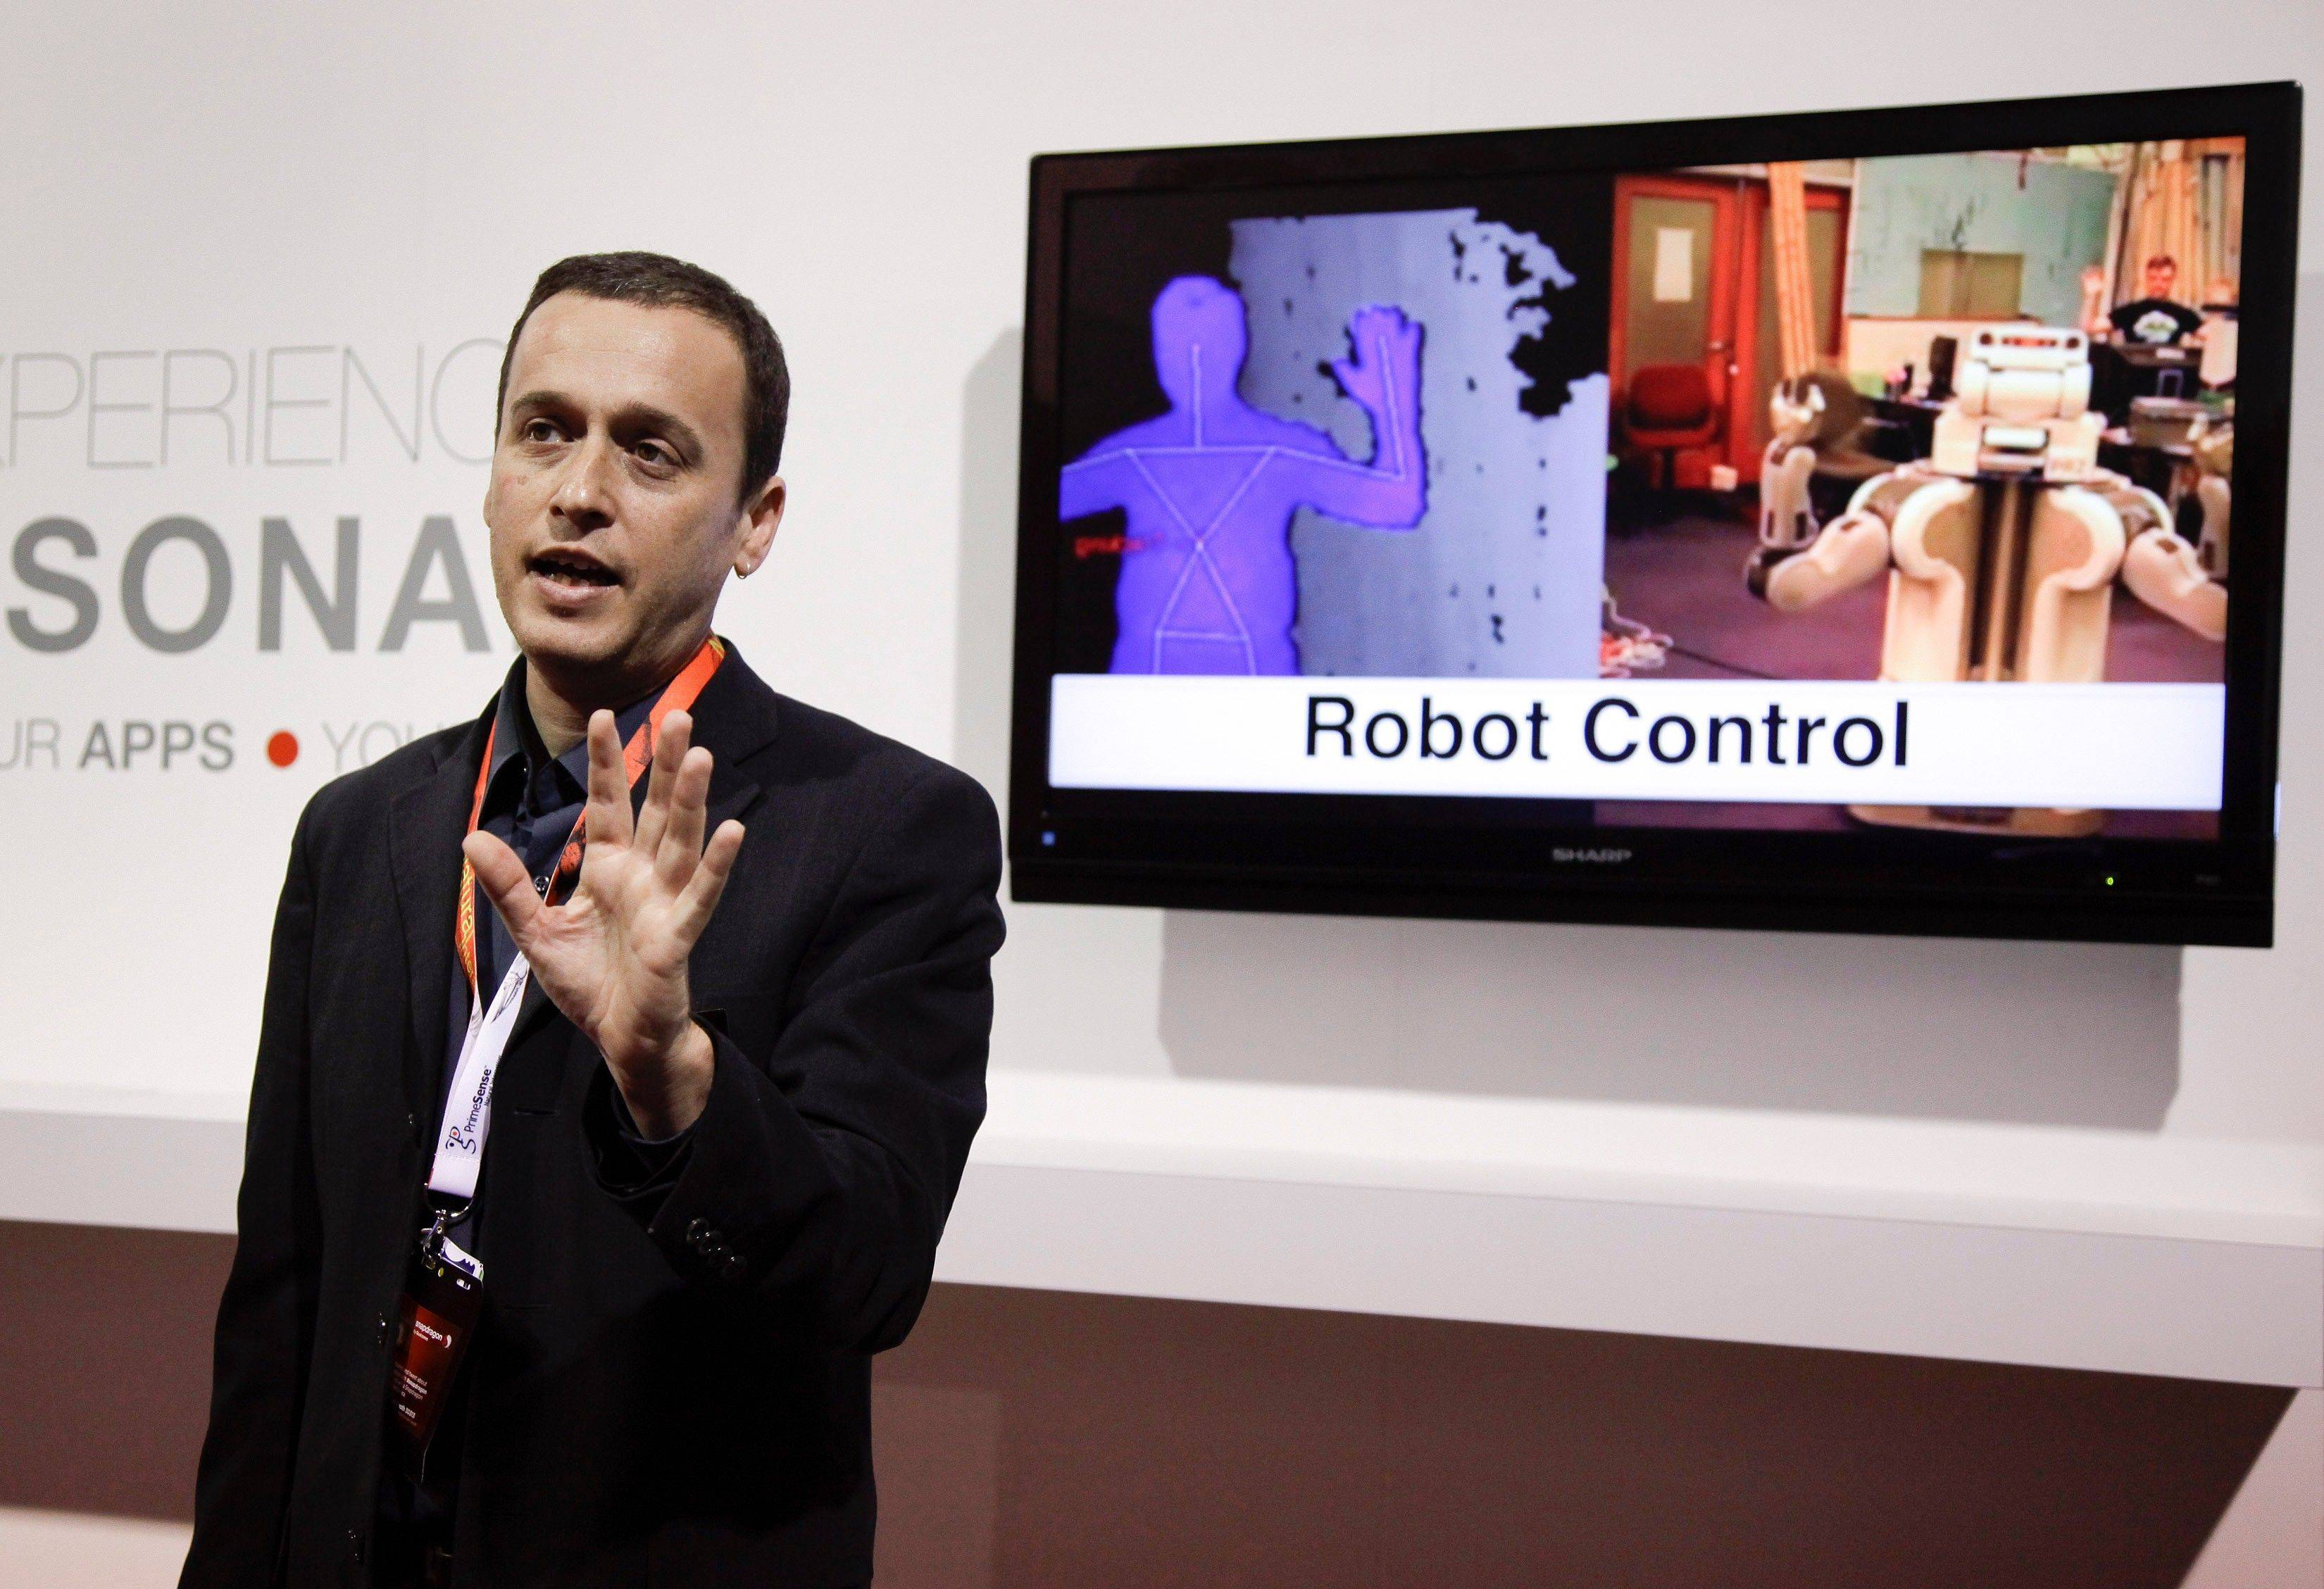 Prime Sense employee Adi Berenson demonstrates the use of depth control cameras at the 2012 International Consumer Electronics Show in Las Vegas. The technology allows control of electronic devices with body motion.